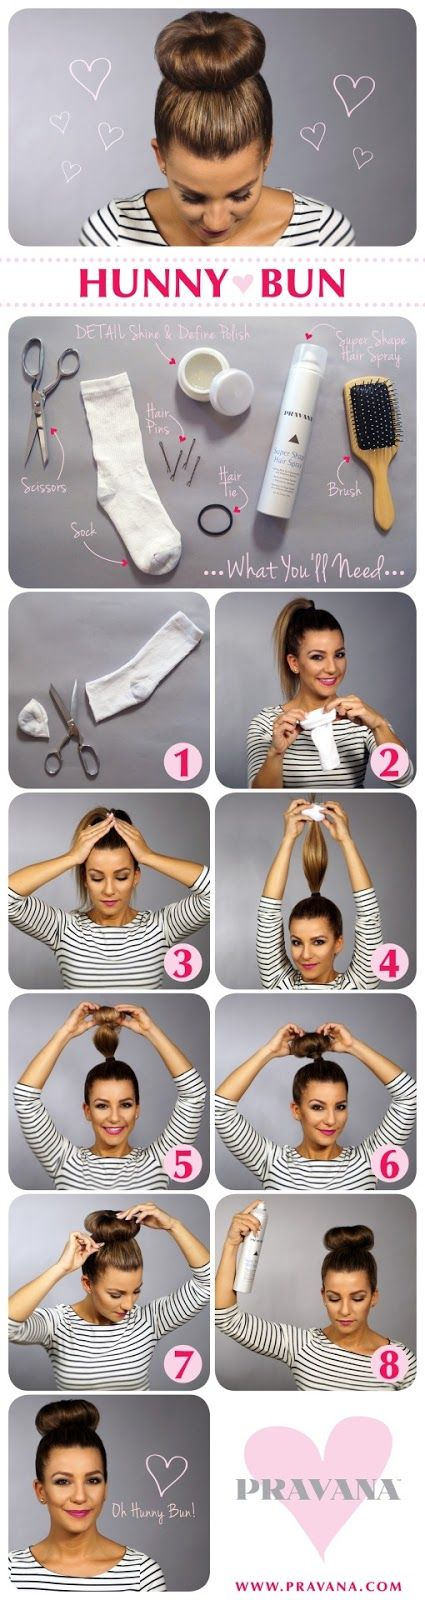 18 Easy And Newest Hairstyles For Cute Girls - Try Now  #hair #hairstyles